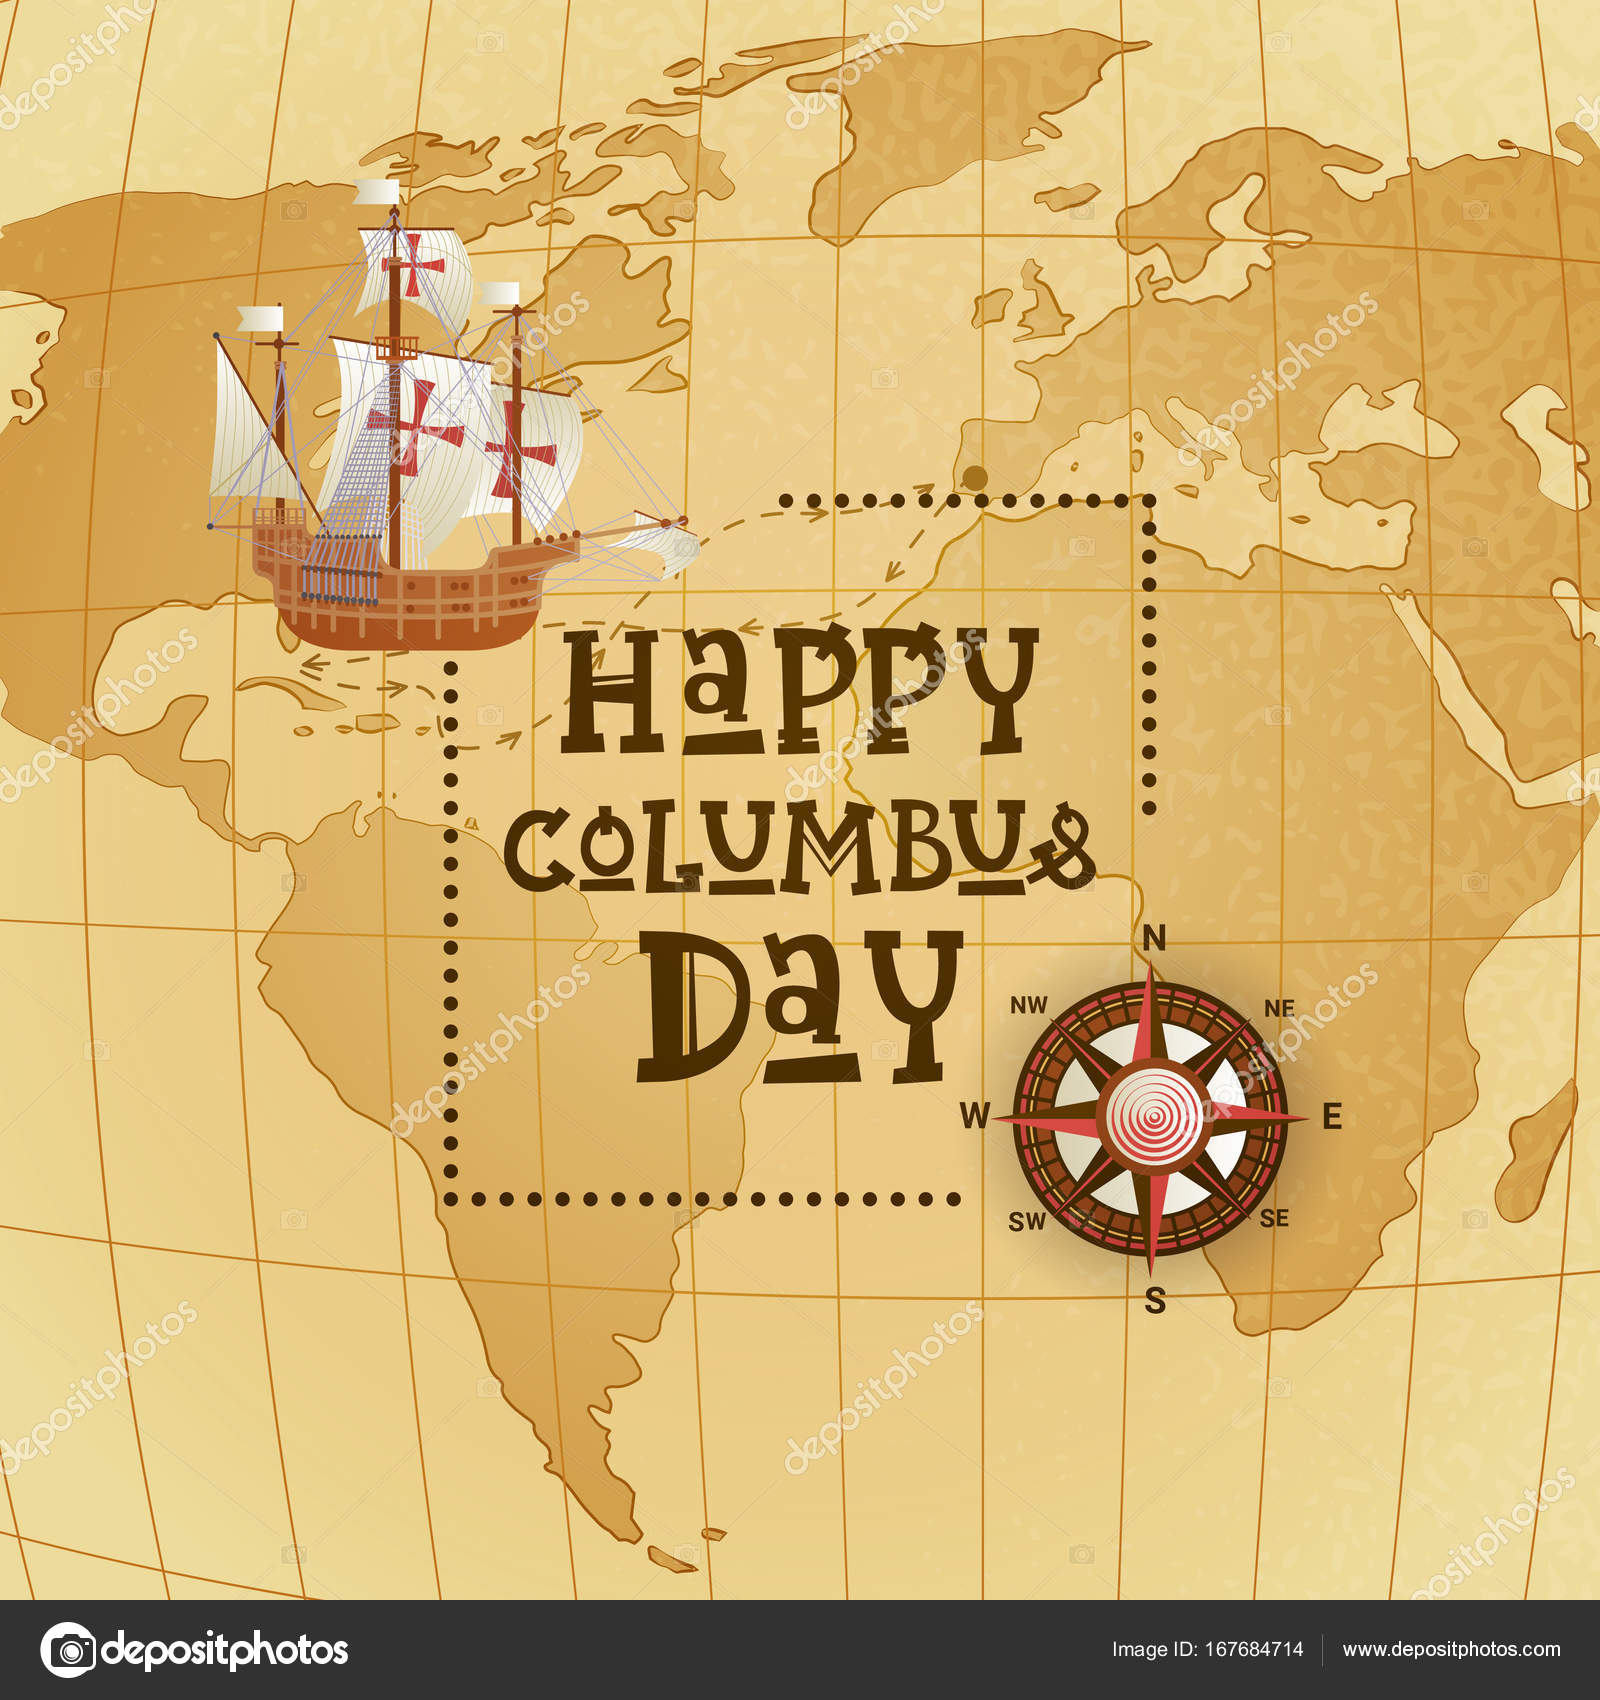 Happy Columbus Day National Usa Holiday Greeting Card With ... on vibrant world map, kawaii world map, survival world map, fake world map, titanium world map, thank you world map, america's world map, nameless world map, distressed world map, scary world map, neutral tone world map, bunny world map, doodle world map, umbrella world map, silly world map, sick world map, evil world map, wealthy world map, spooky world map,